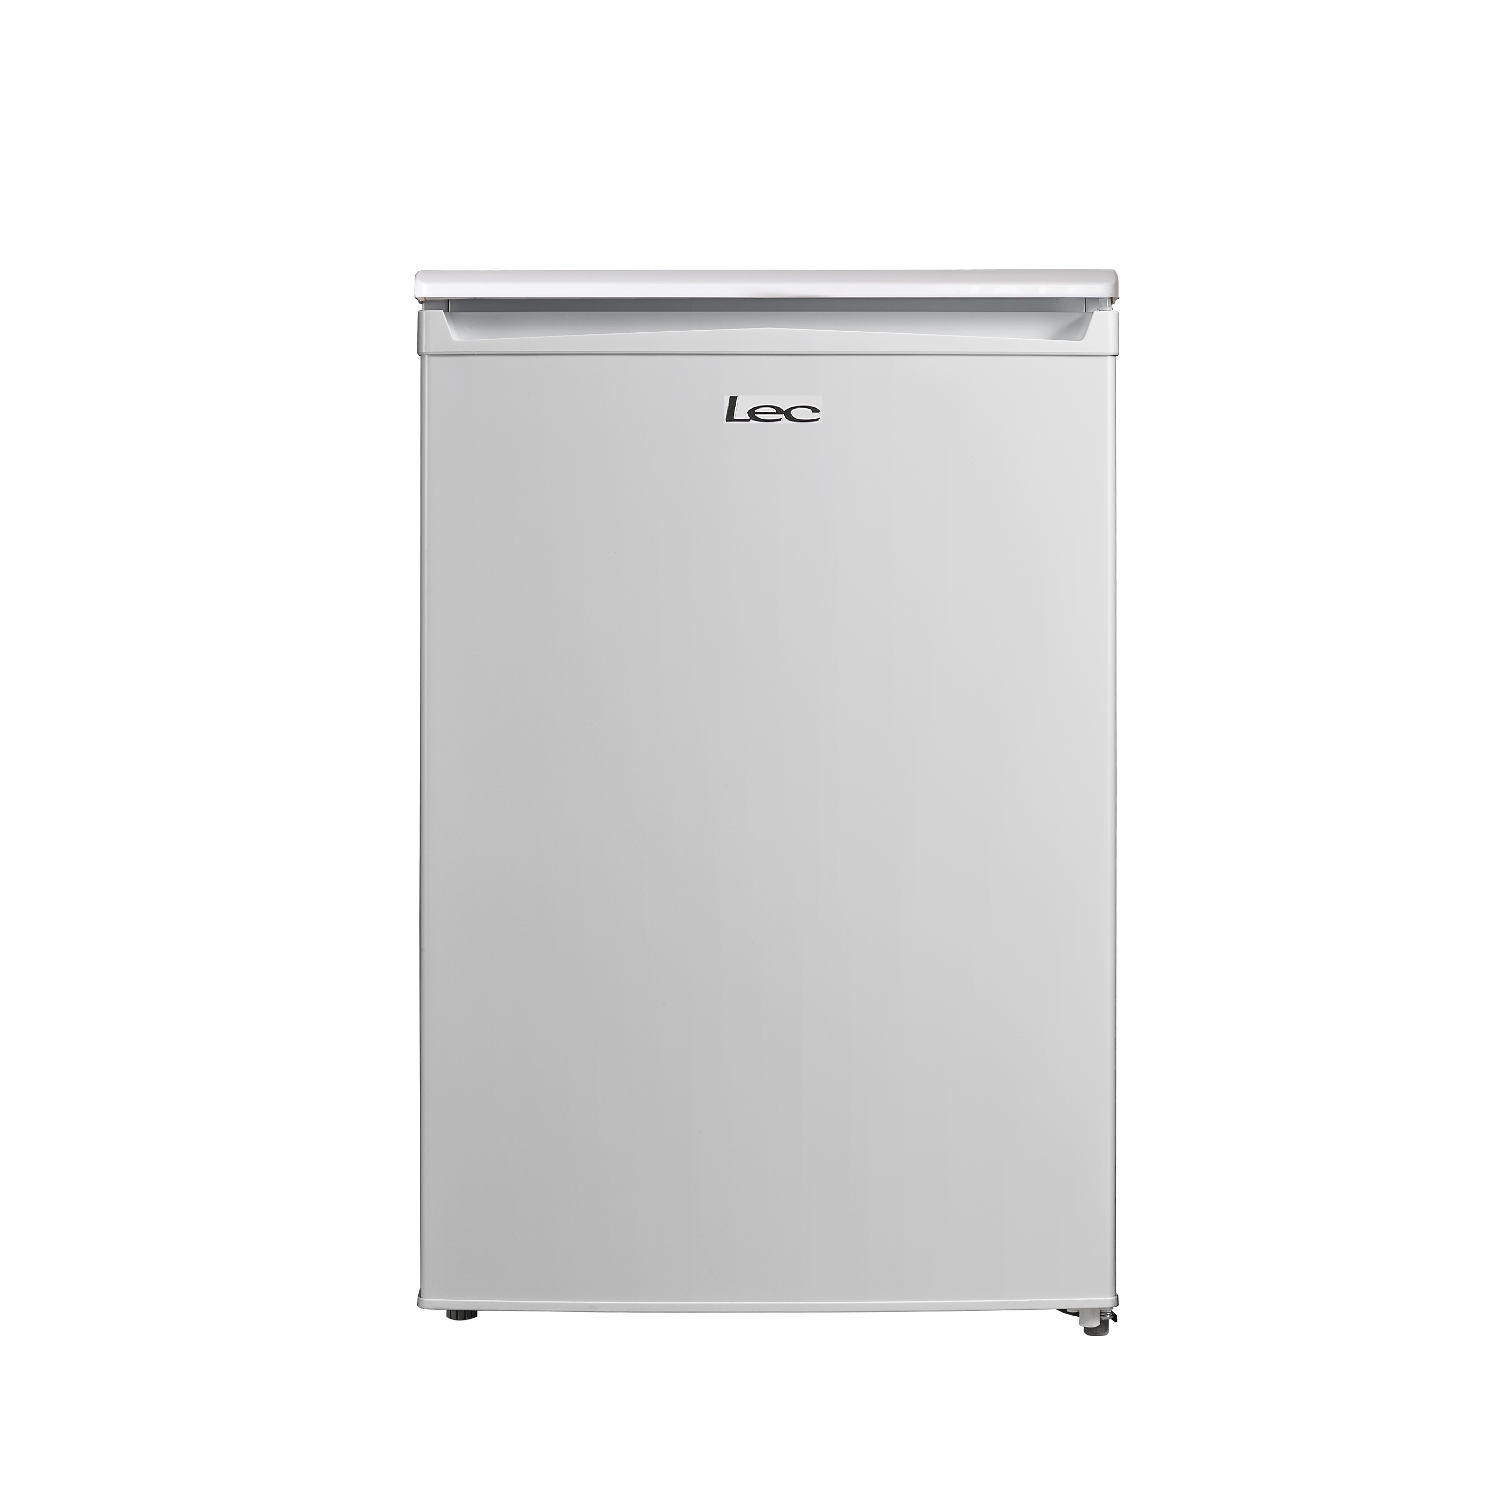 Lec 55cm Undercounter Freezer - White - A+ Rated - 0